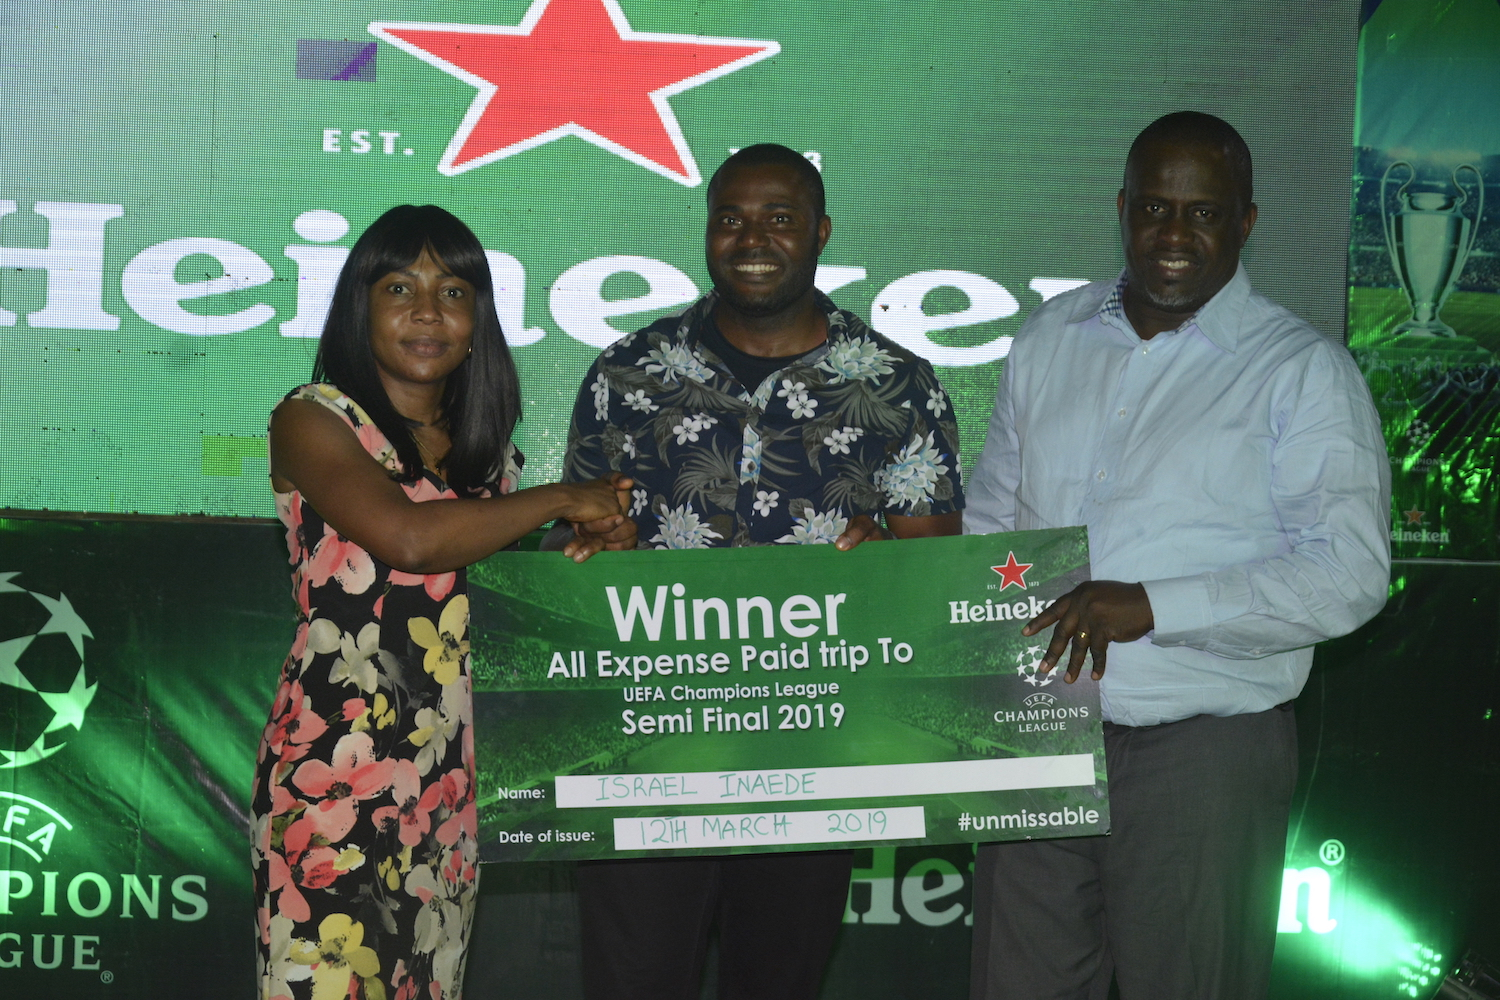 Heineken Shares UEFA Champions League Unmissable Moments With Football Fans In Port Harcourt And Enugu